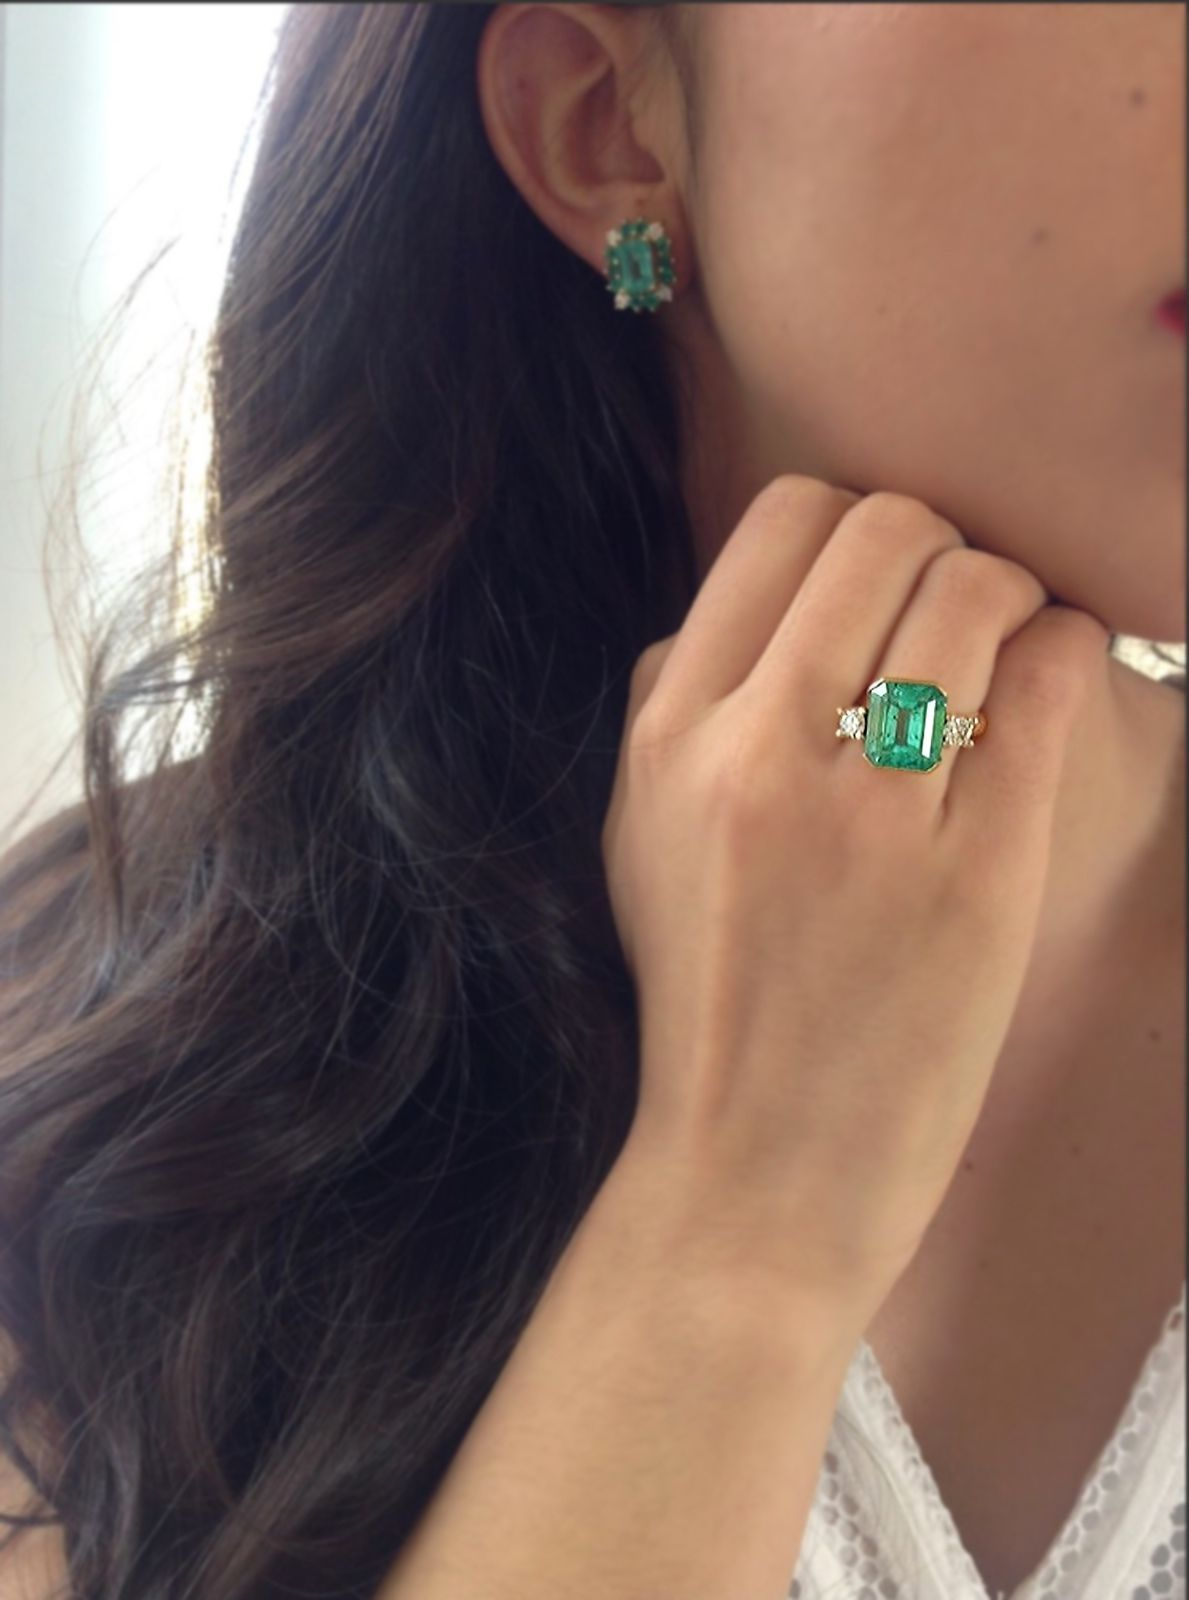 169a80e90606d 7.35cts AAA NATURAL COLOMBIAN EMERALD RING WITH DIAMONDS ACCENTS 18K ...